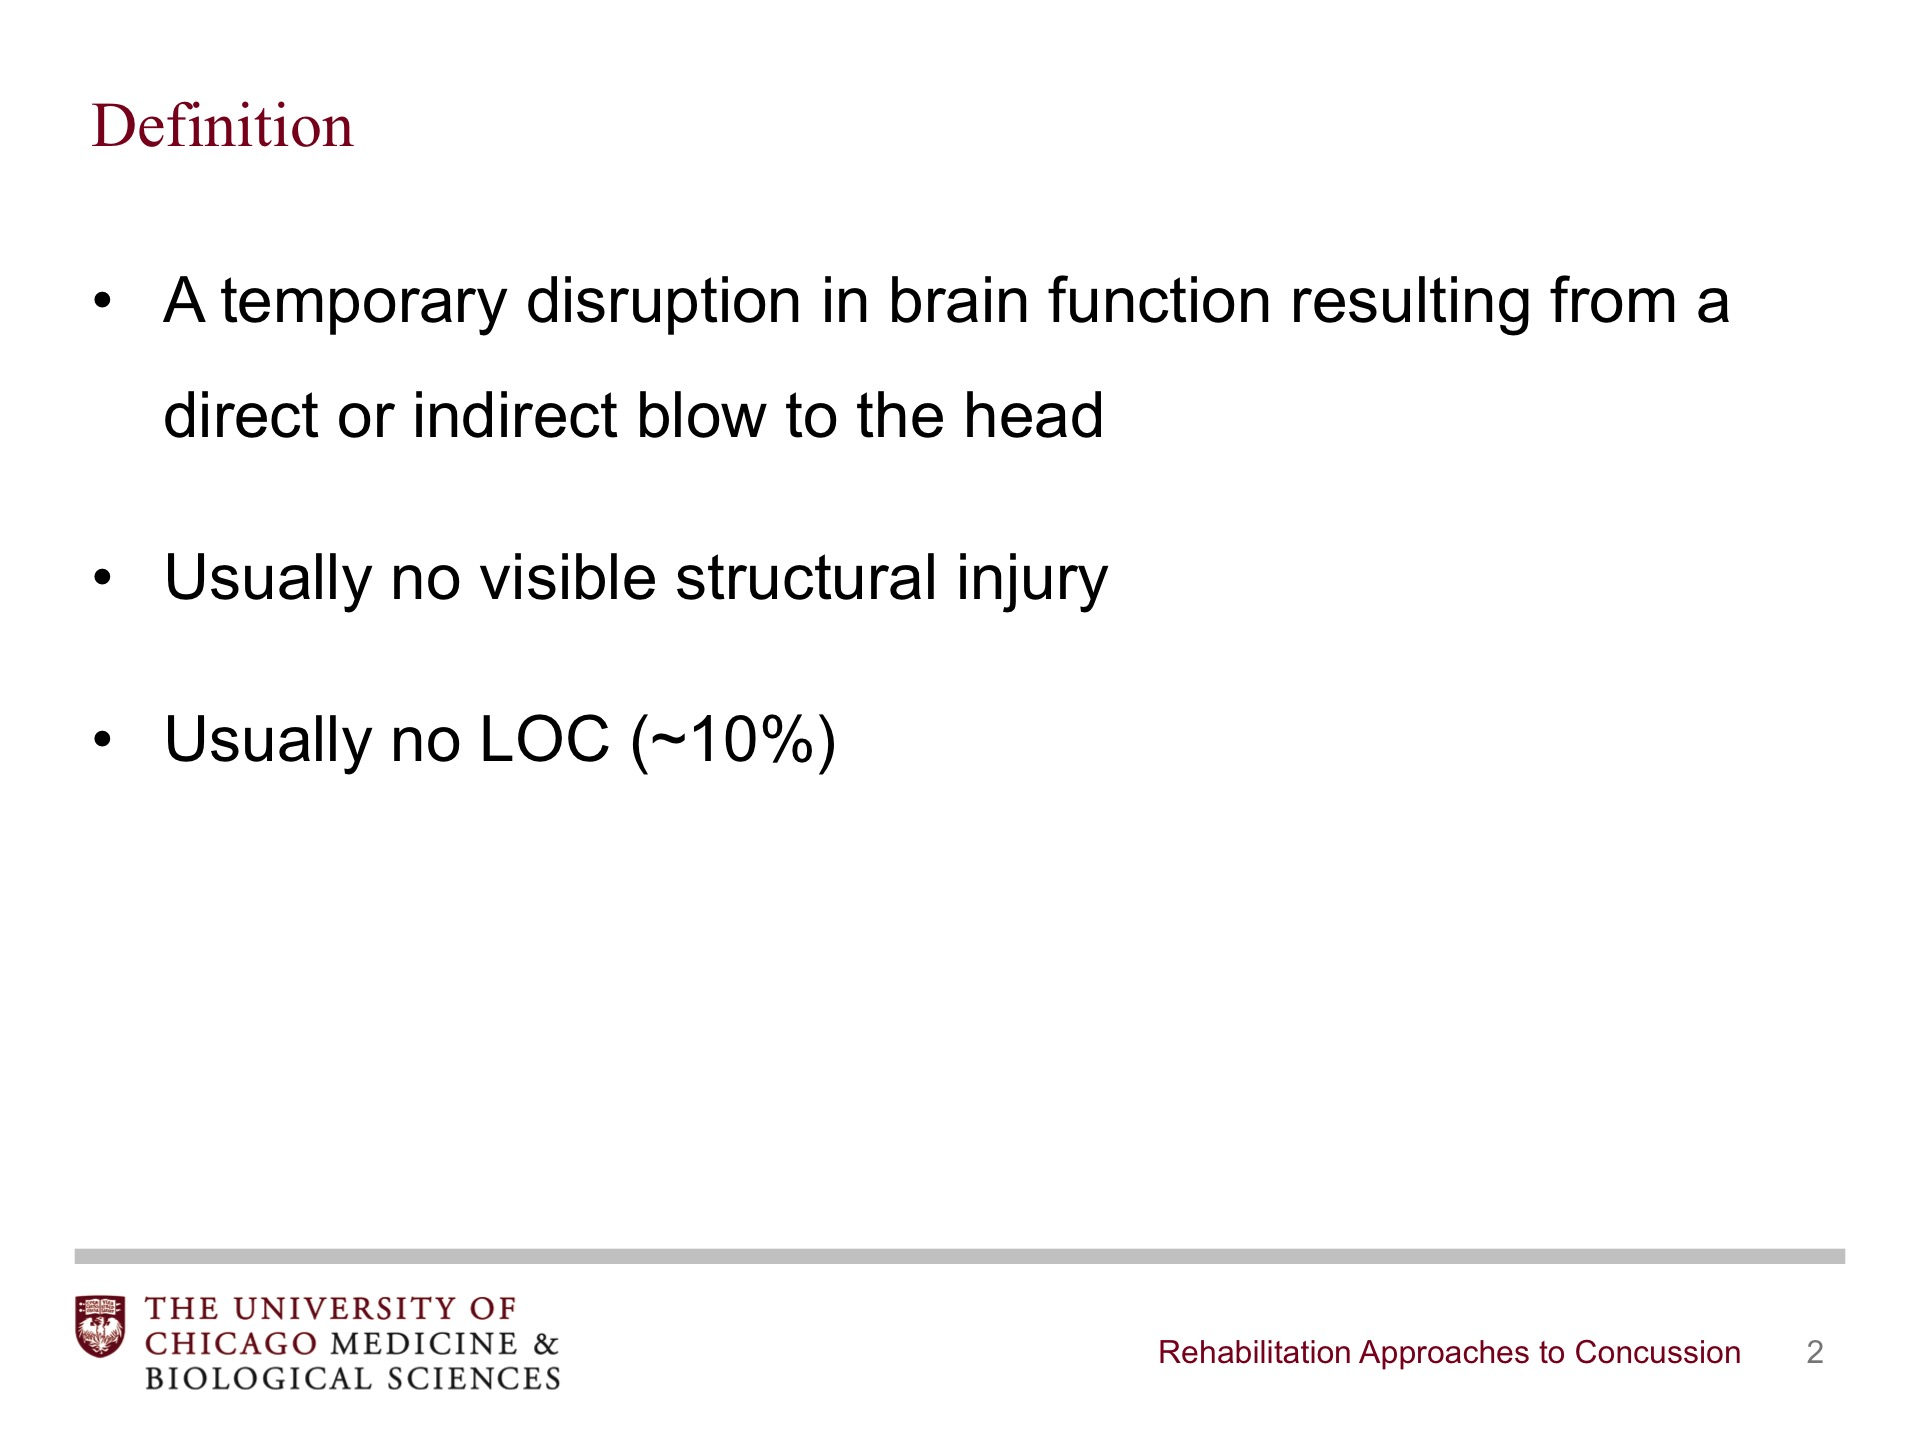 rehabilitation approaches to concussion - broadcastmed